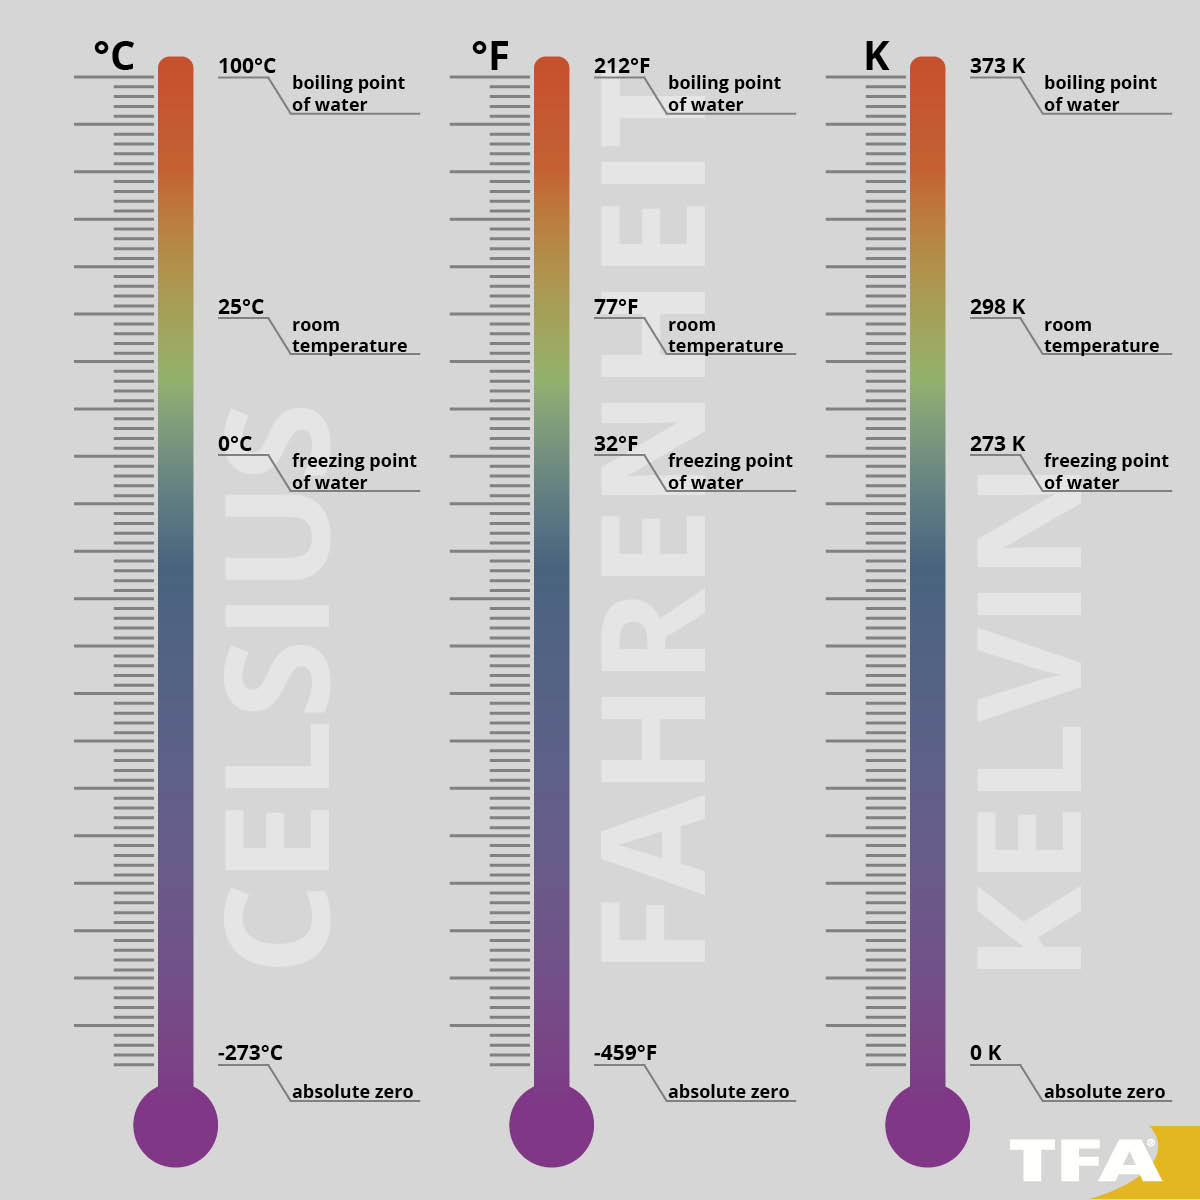 Thermometers measure in the unit Celsius, Fahrenheit or Kelvin